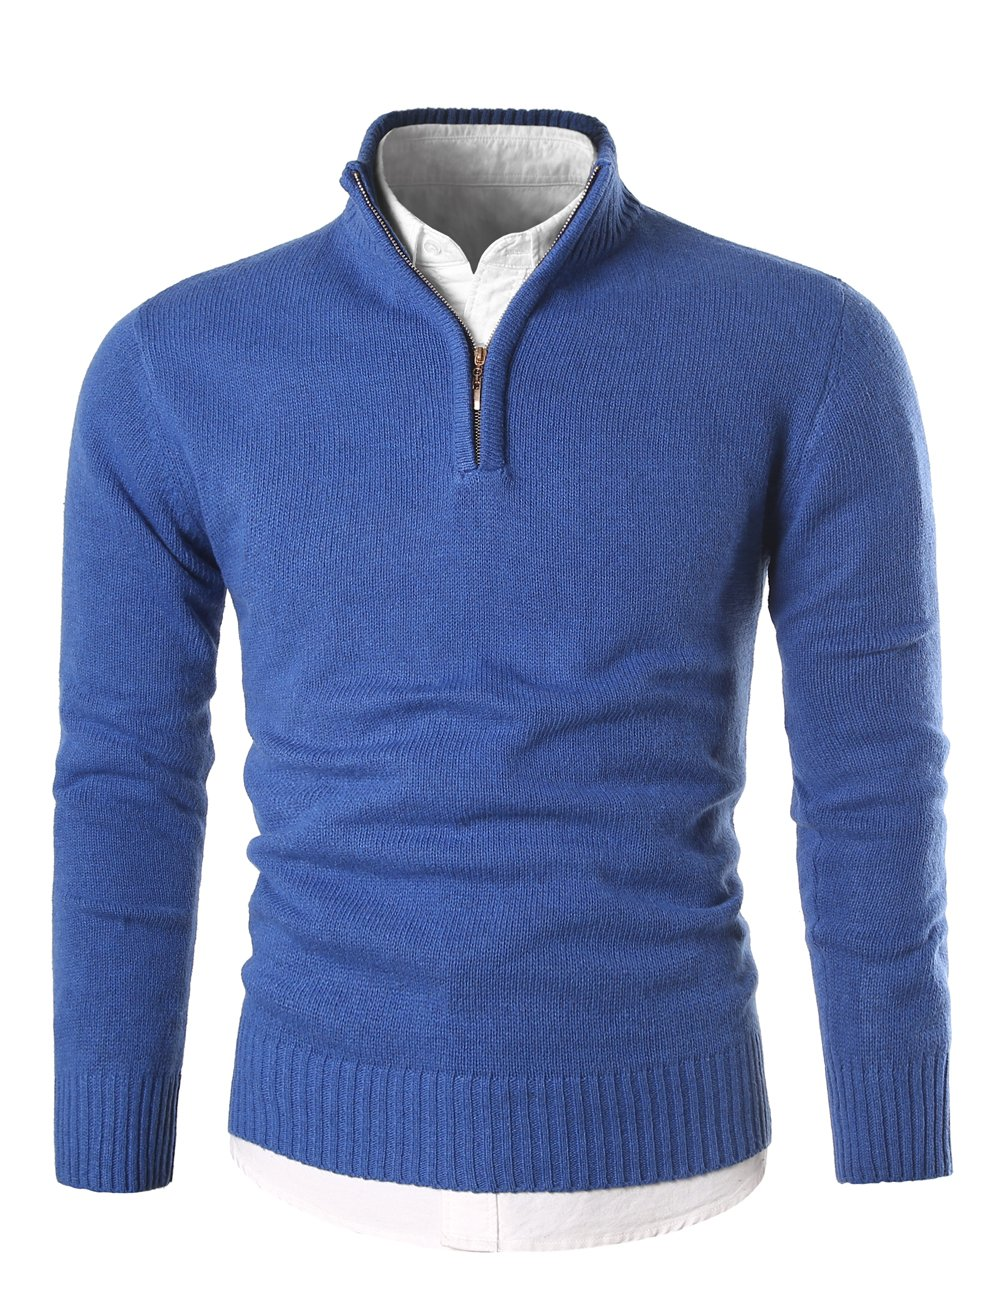 MIEDEON Mens Slim Fit Zip up Mock Neck Polo Sweater Casual Long Sleeve Sweater and Pullover Sweaters with Ribbing Edge (Blue, L)